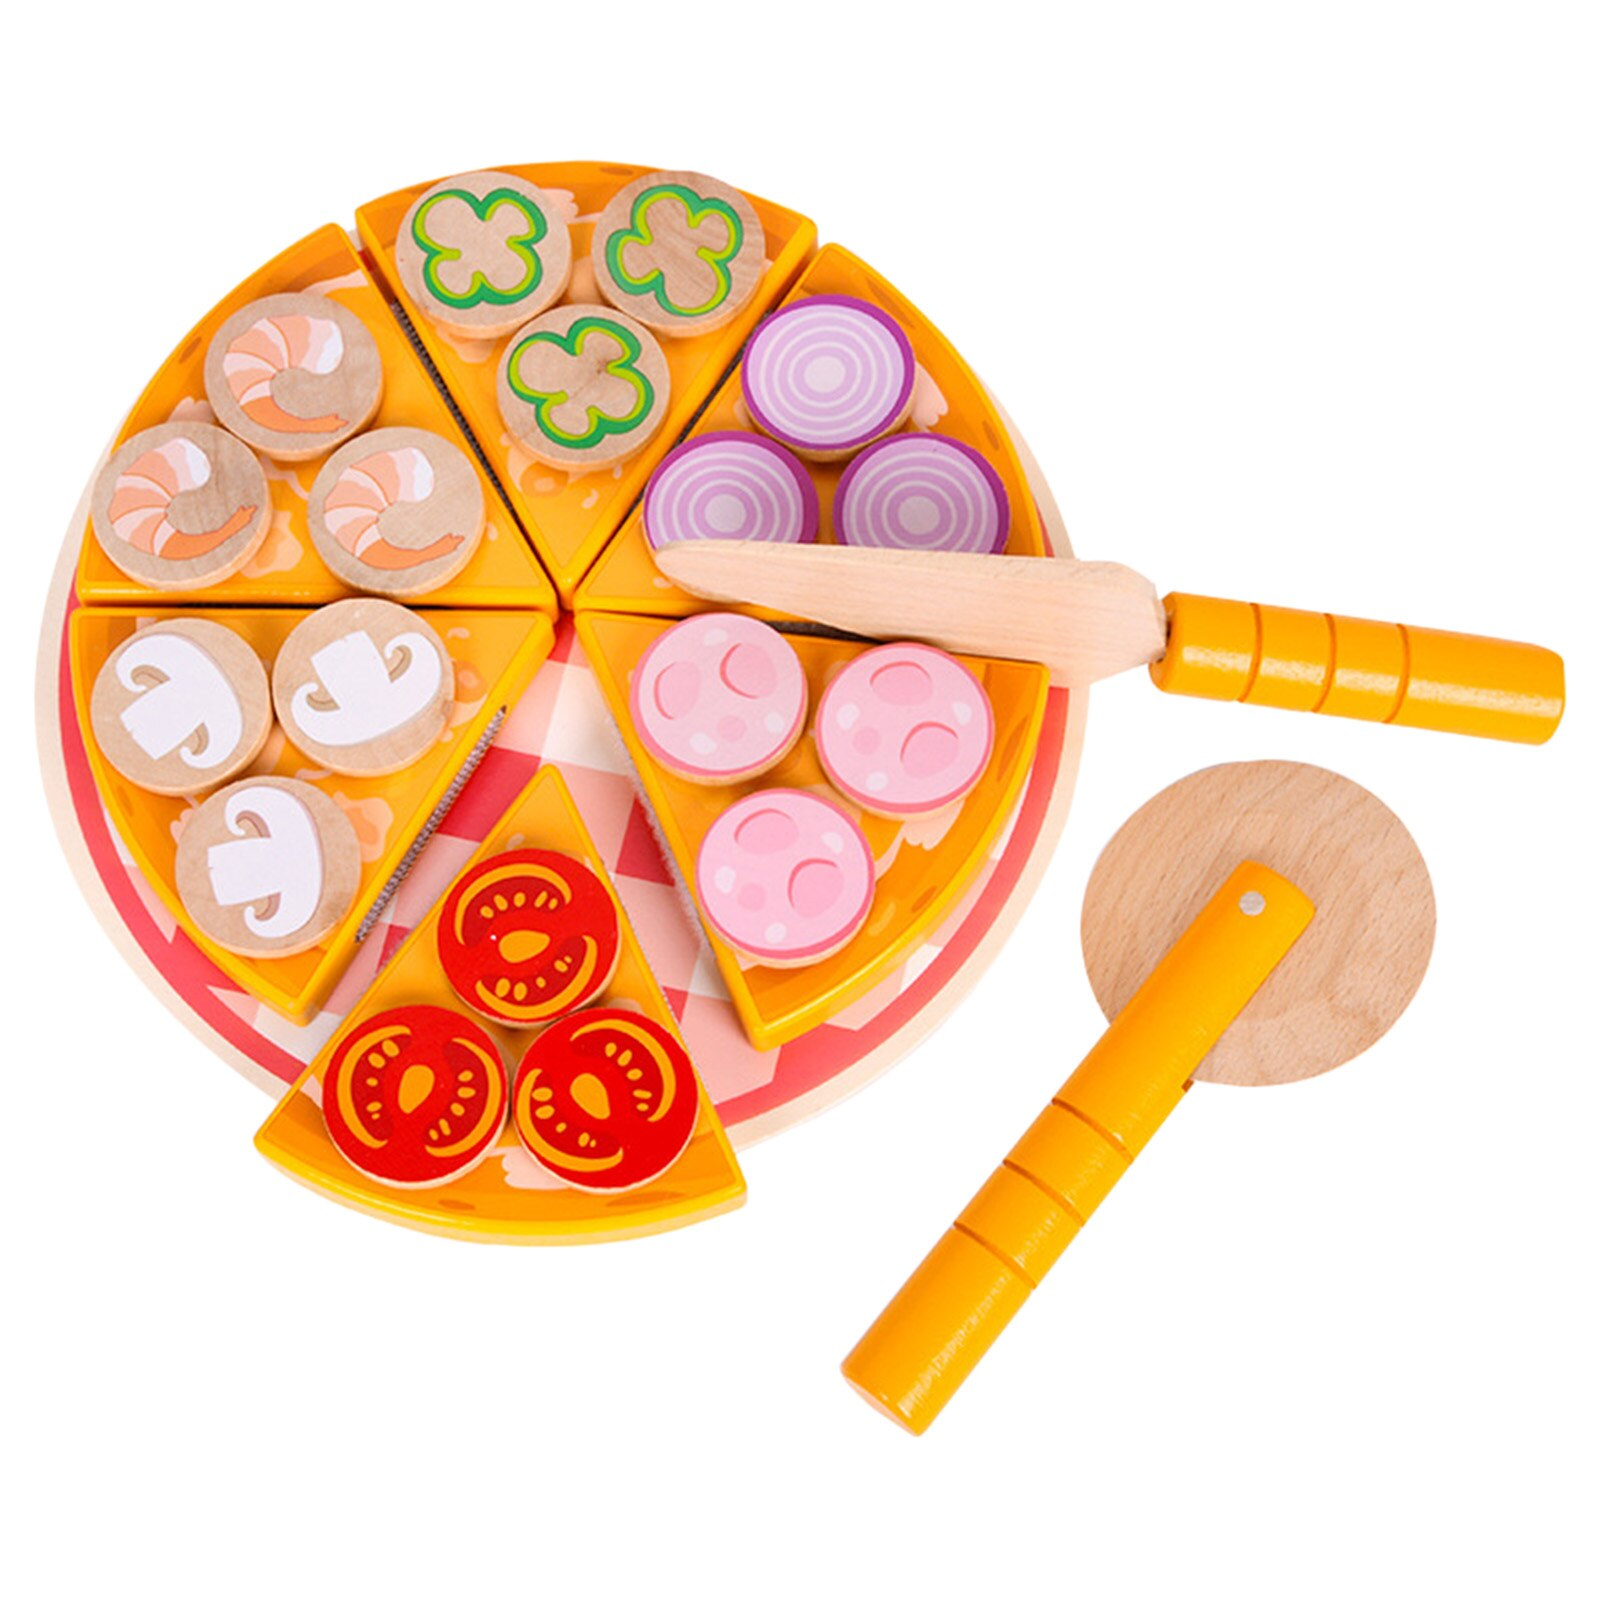 6 Pcs Pretend Wooden Toy Game Food Cutter Pizza Kids Playset